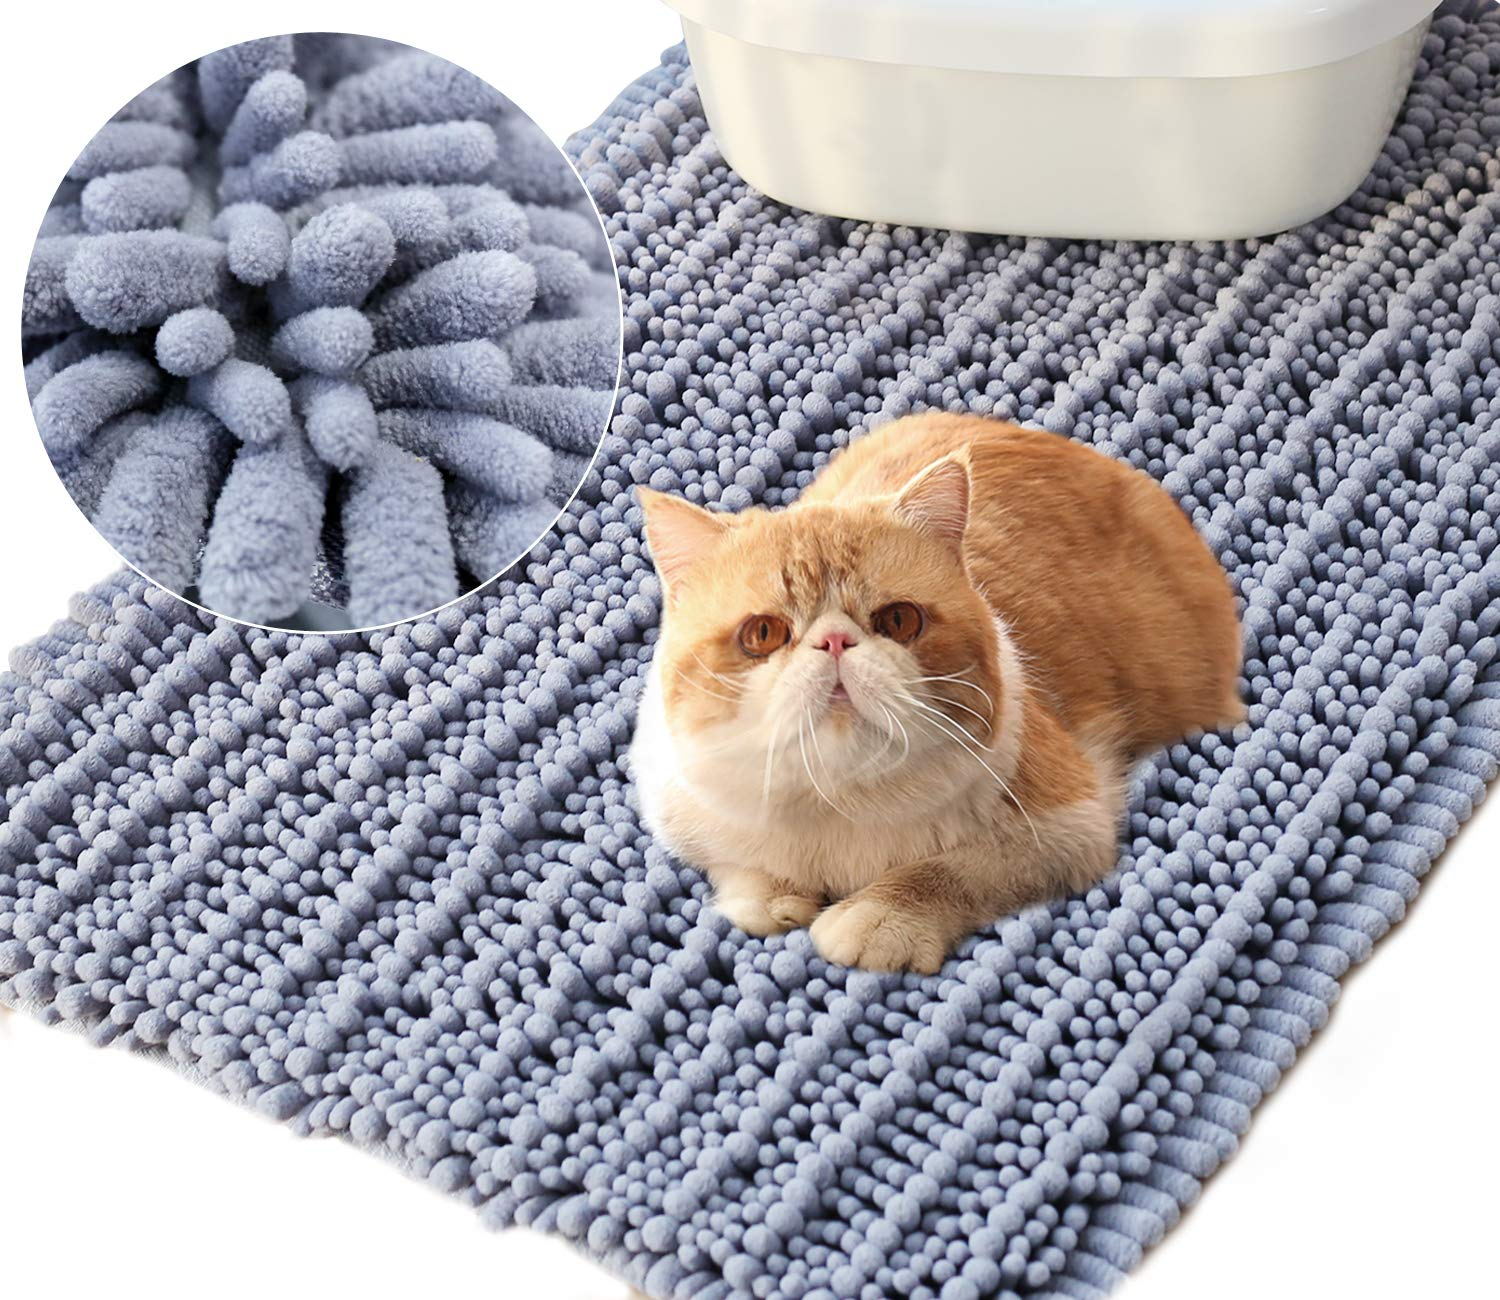 Vivaglory 35½ x 23¾inch Large Washable Cat Litter Mat,3D Design Microfiber Litter Trap Mat, Soft on Sensitive Paws,Ultra Absorbent and Waterproof, Grey by Vivaglory